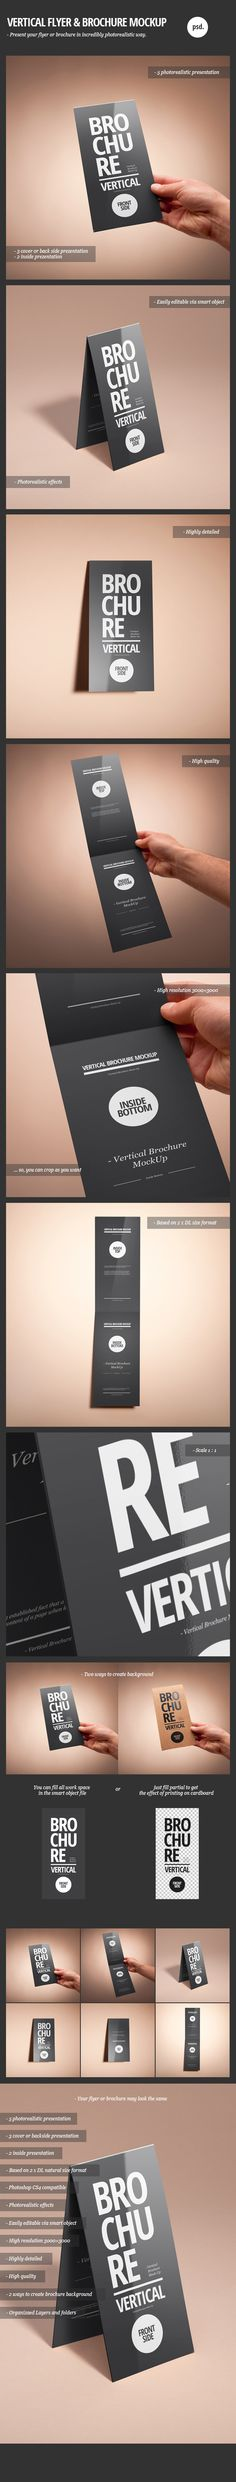 Vertical Flyer & Brochure Mock-Up on Behance